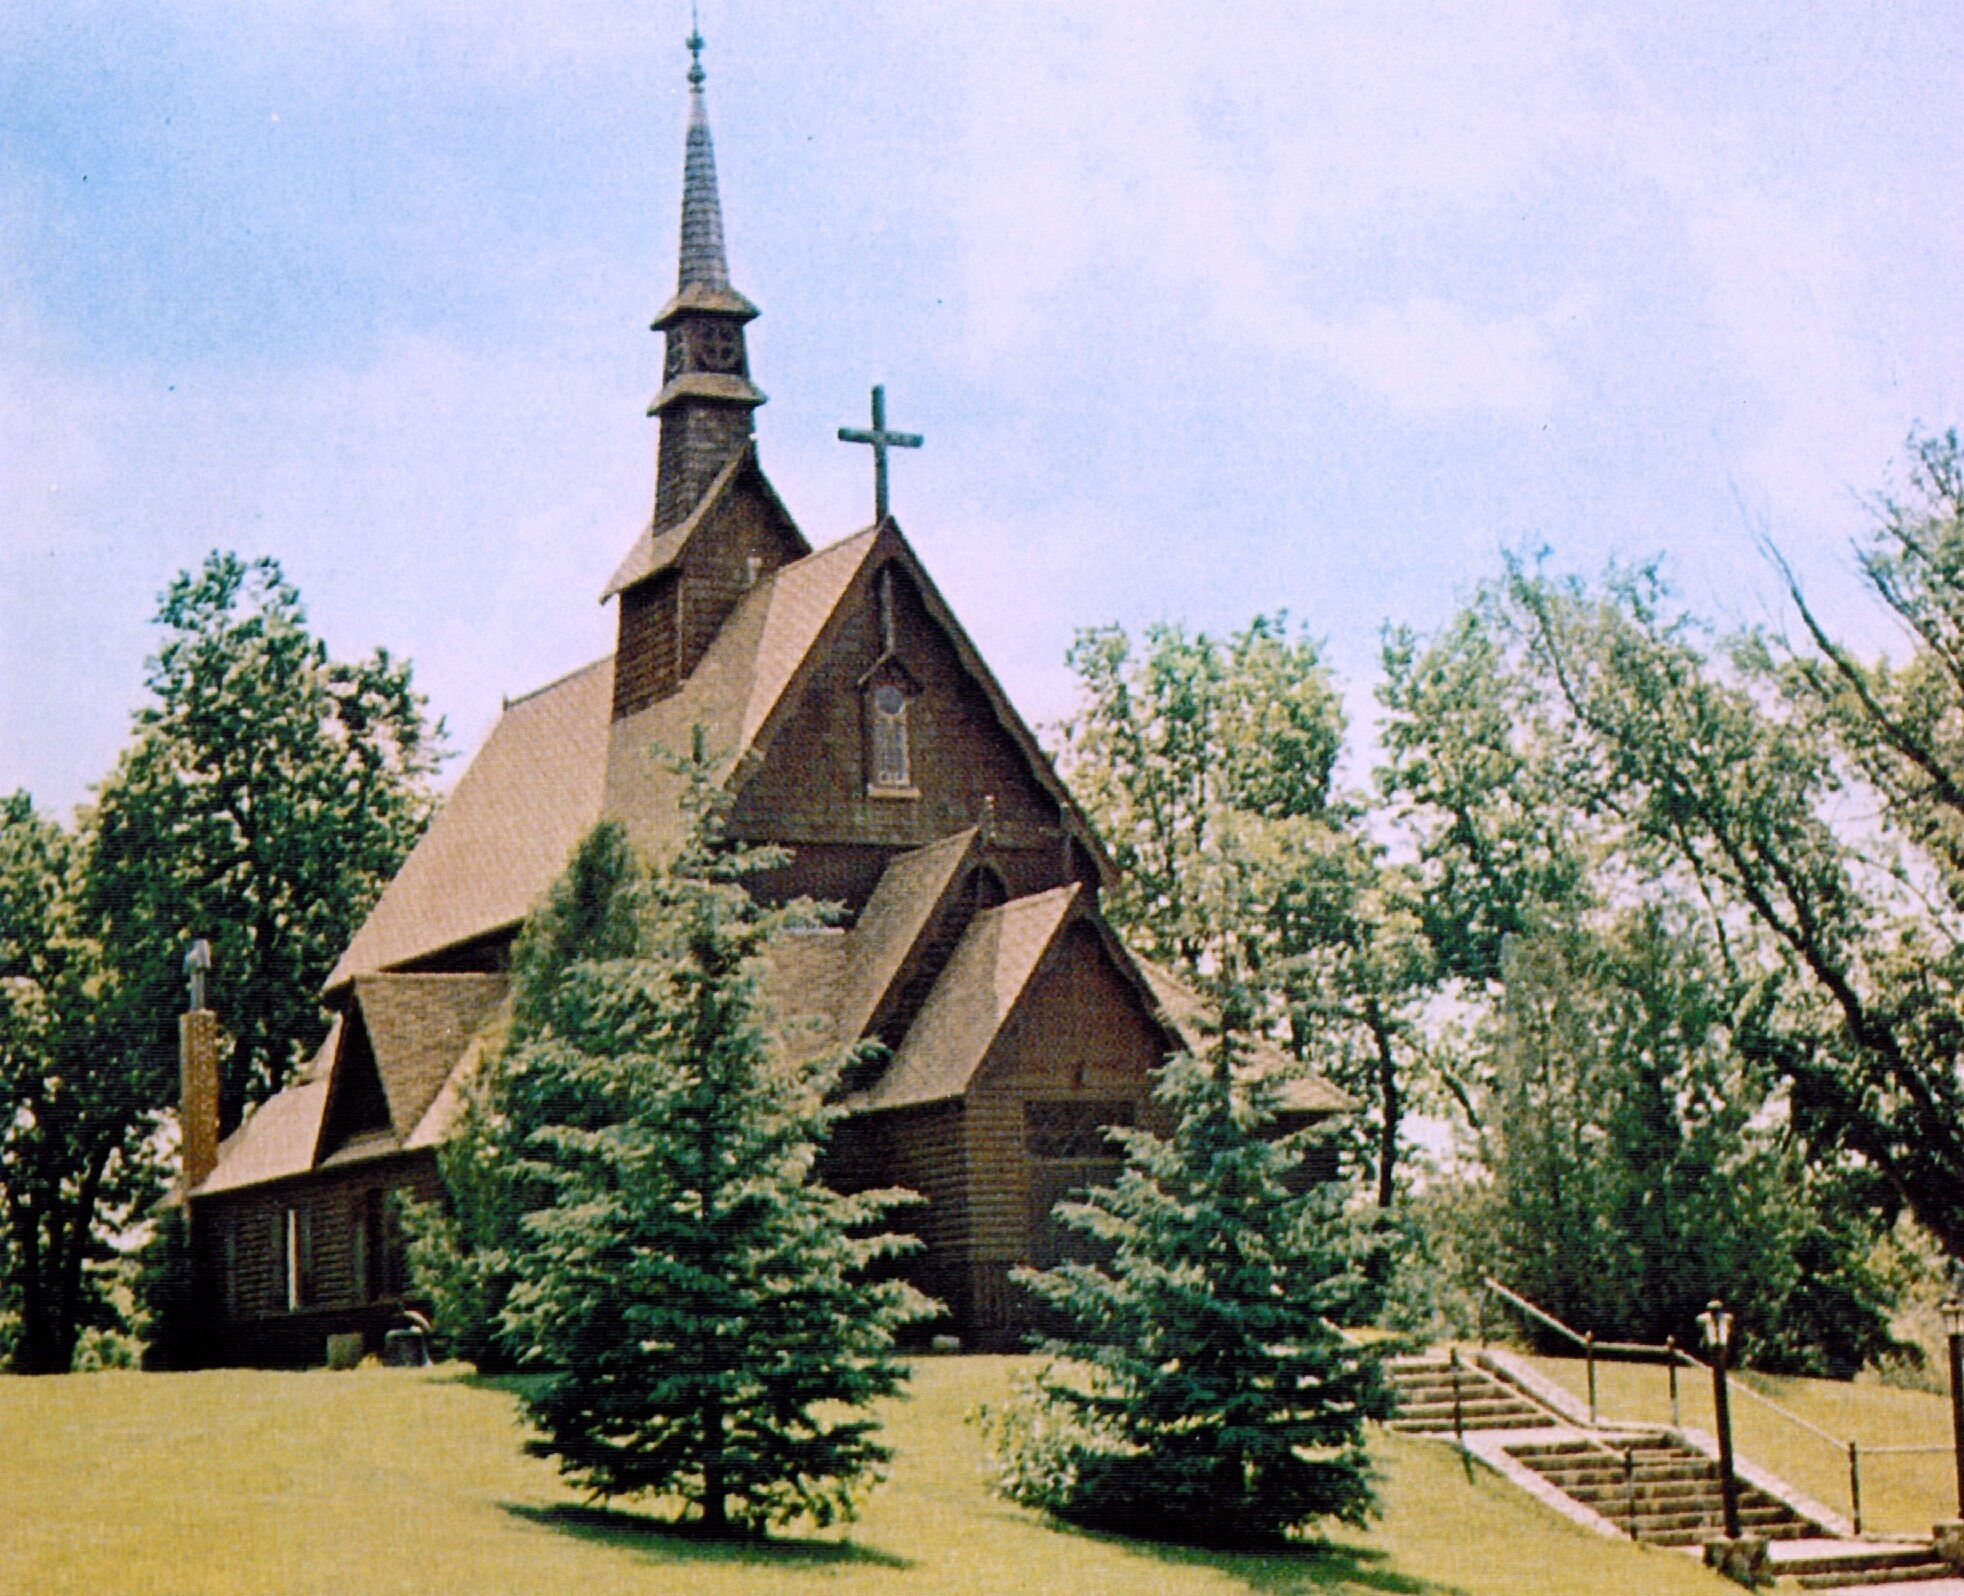 Outside view of a multi-family/religious example